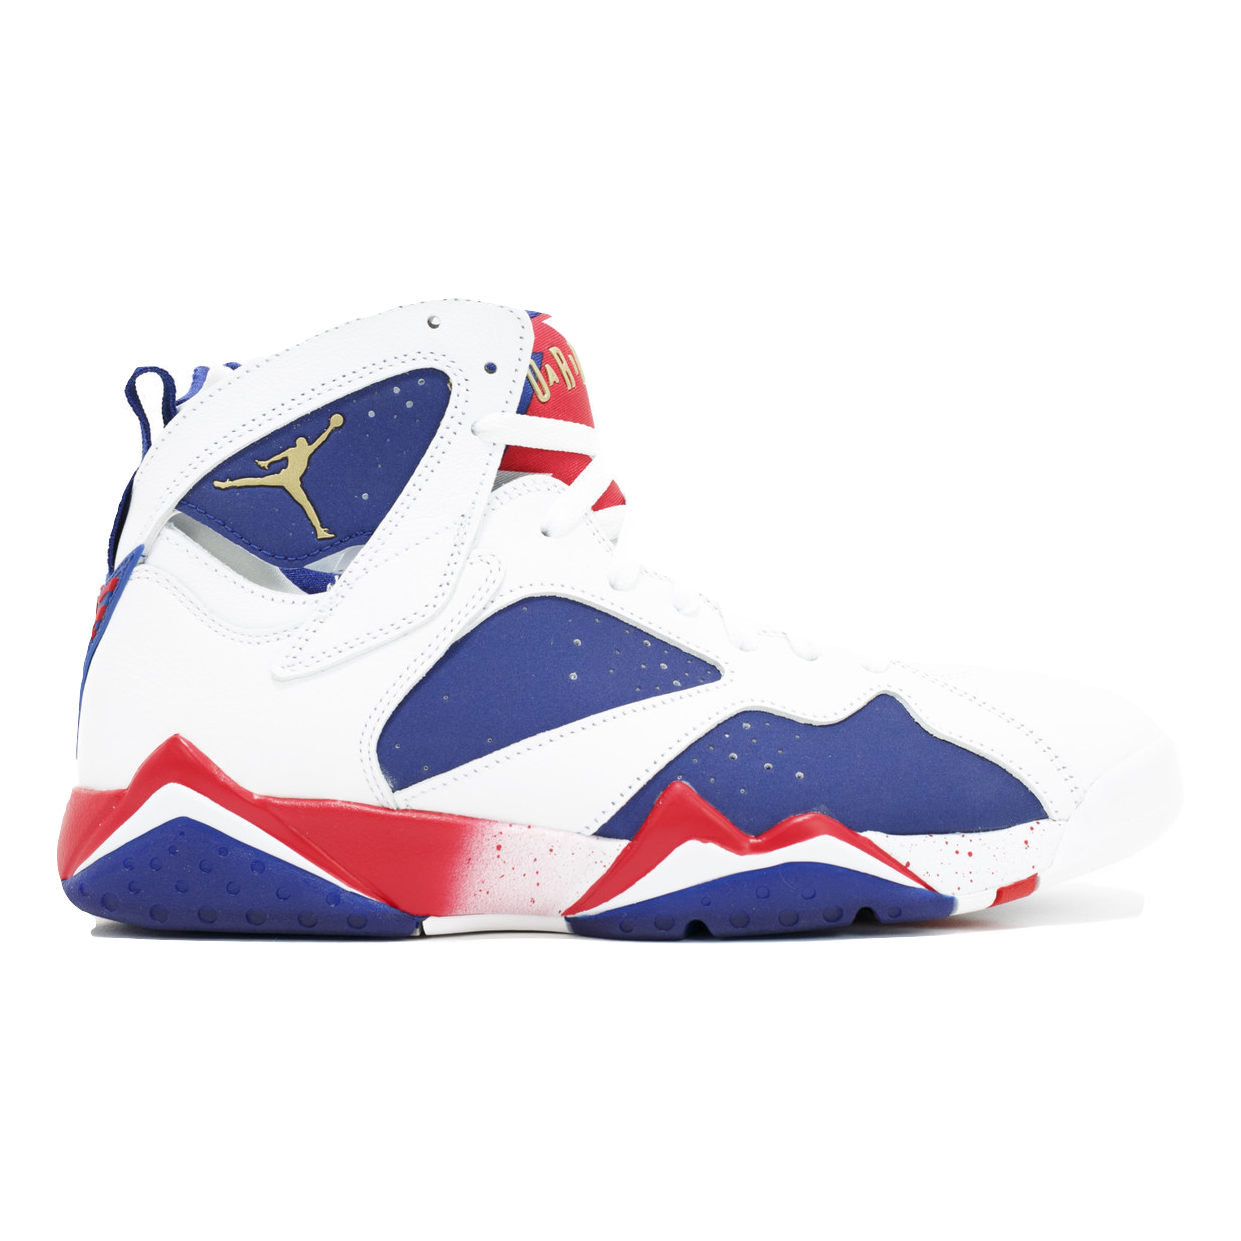 Air Jordan 7 Retro - Tinker Alternate Olympic